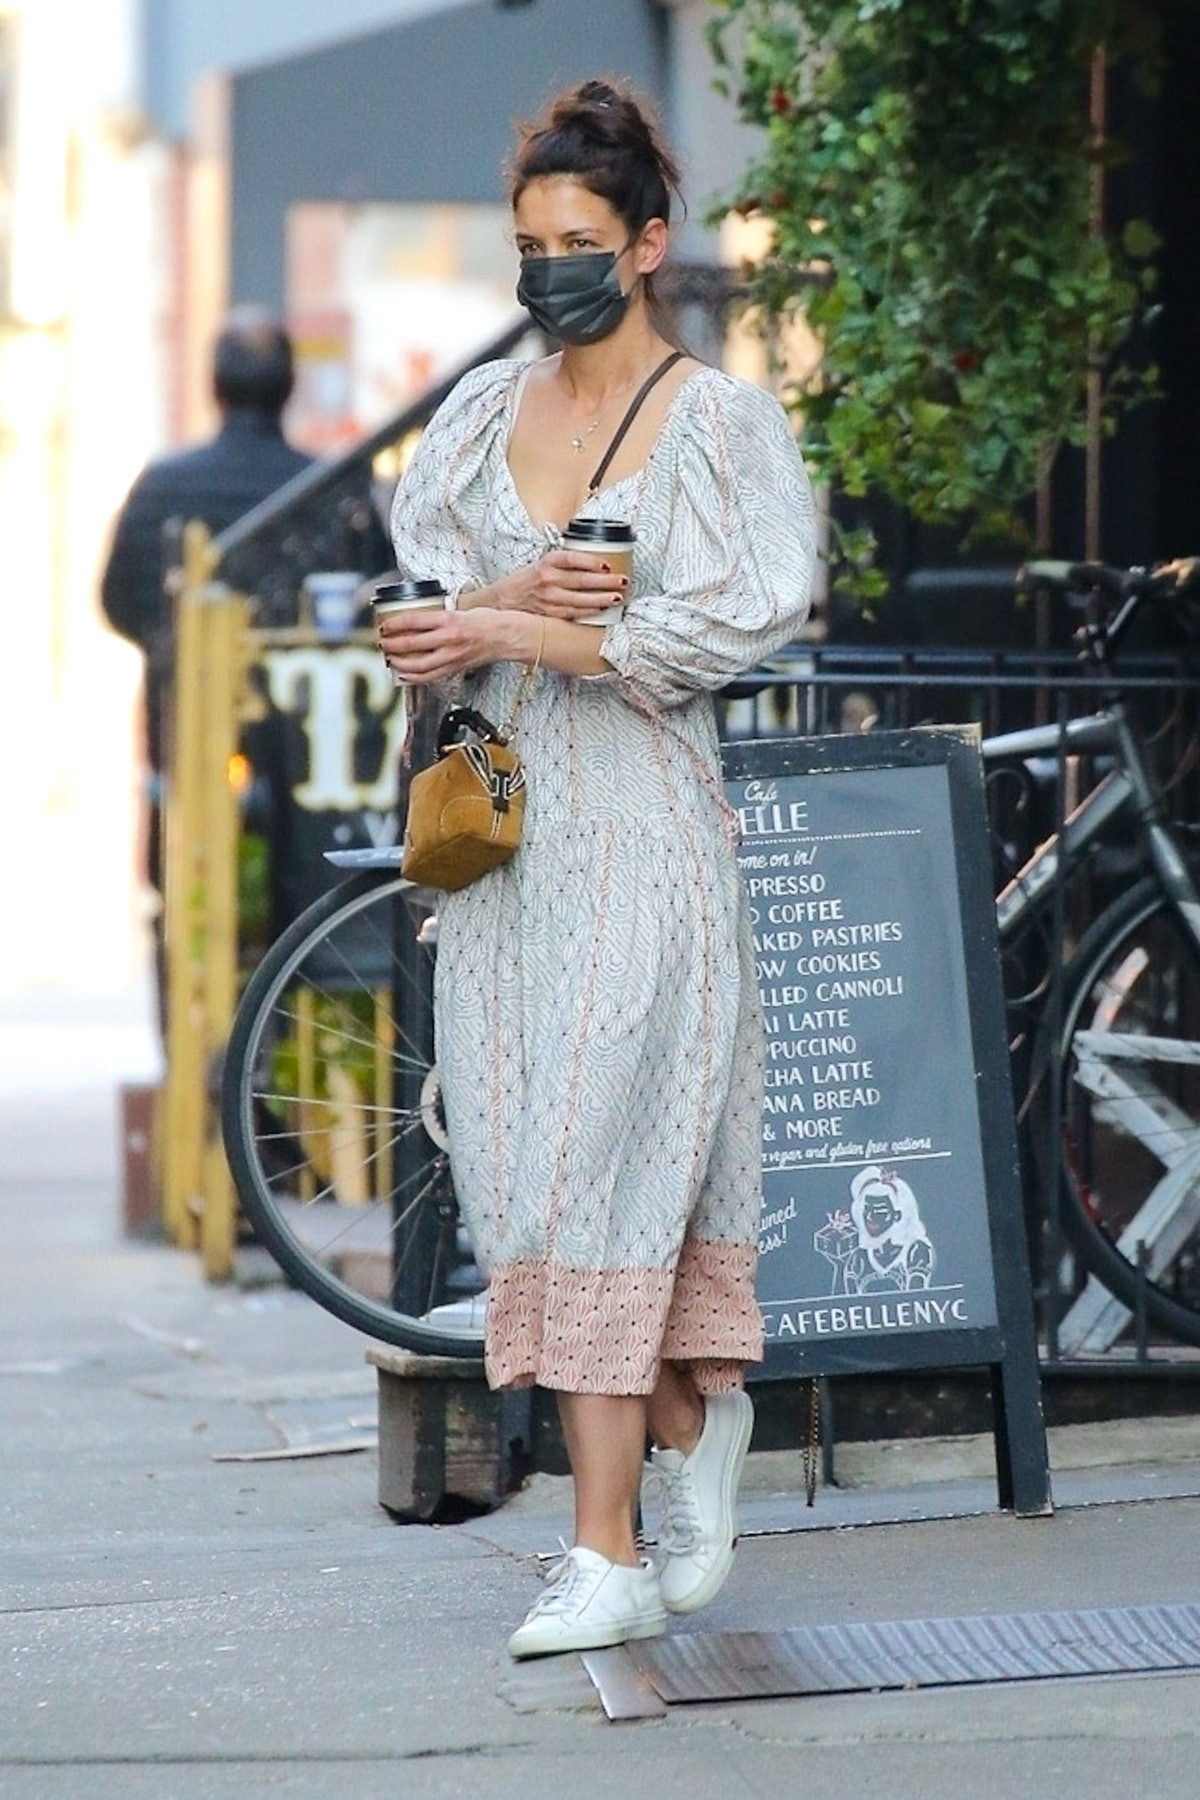 Katie Holmes steps out for coffee rocking a Bohemian chic dress for the occasion. The street style i...